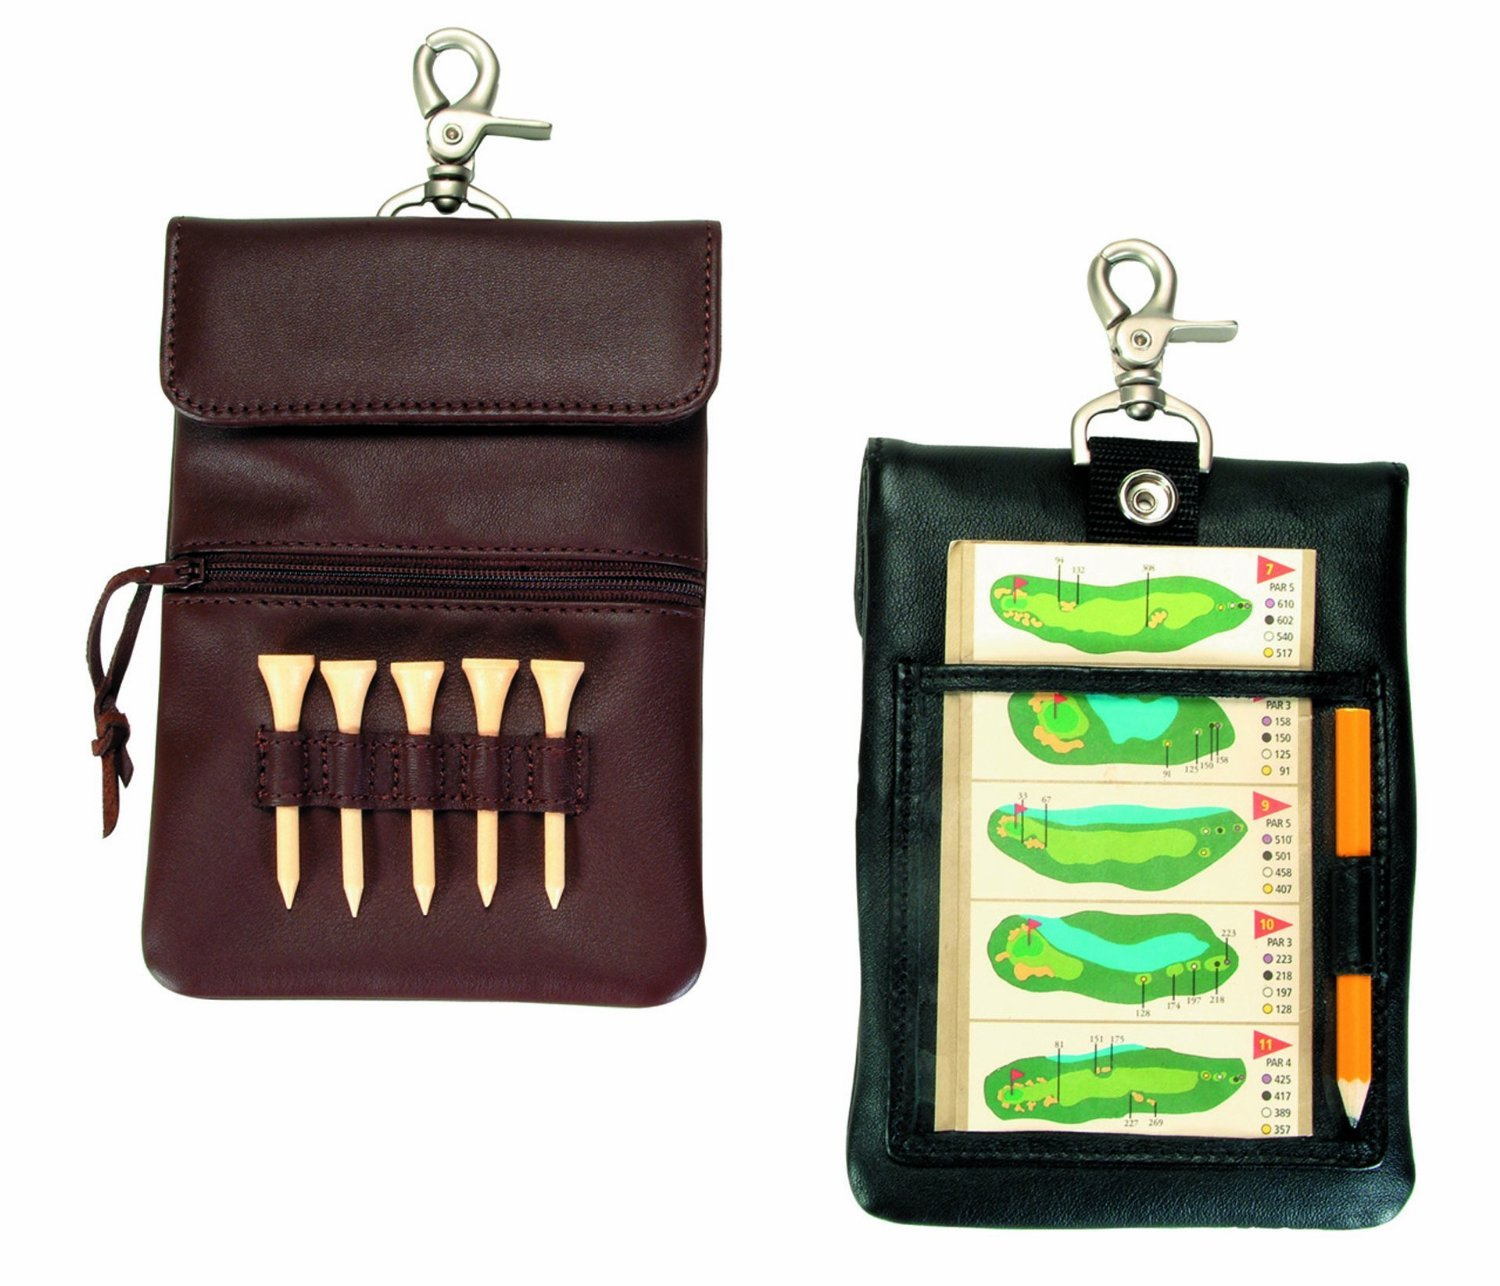 d37f37c23d0e Get Quotations · Royce Leather Clip-on Golf Accessory Bag (Black)